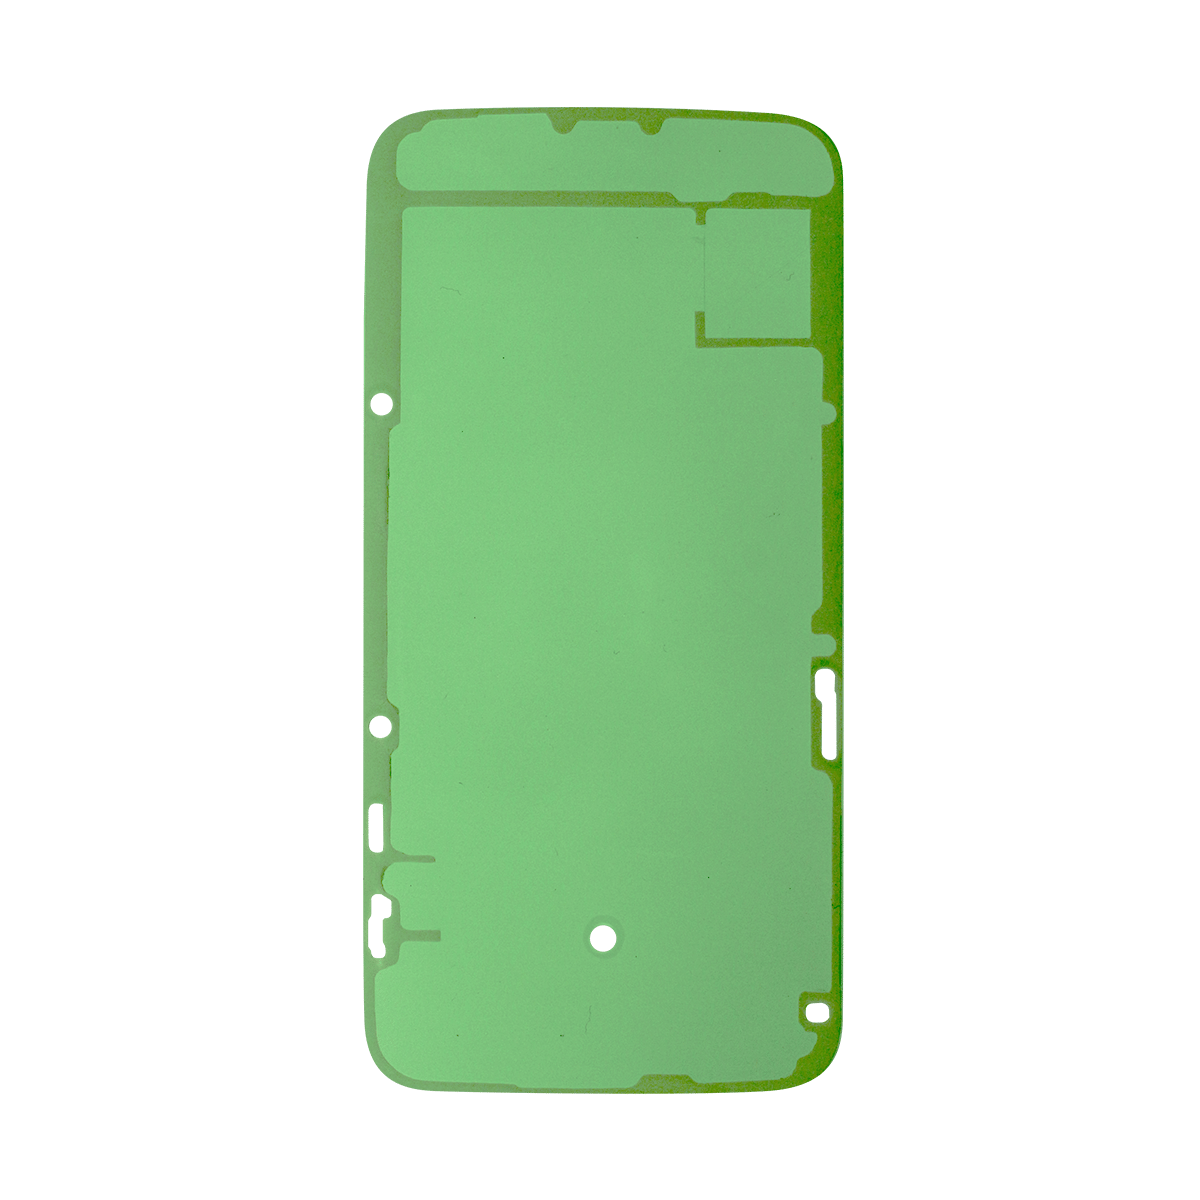 Samsung Galaxy S6 Edge Back Battery Cover Adhesive